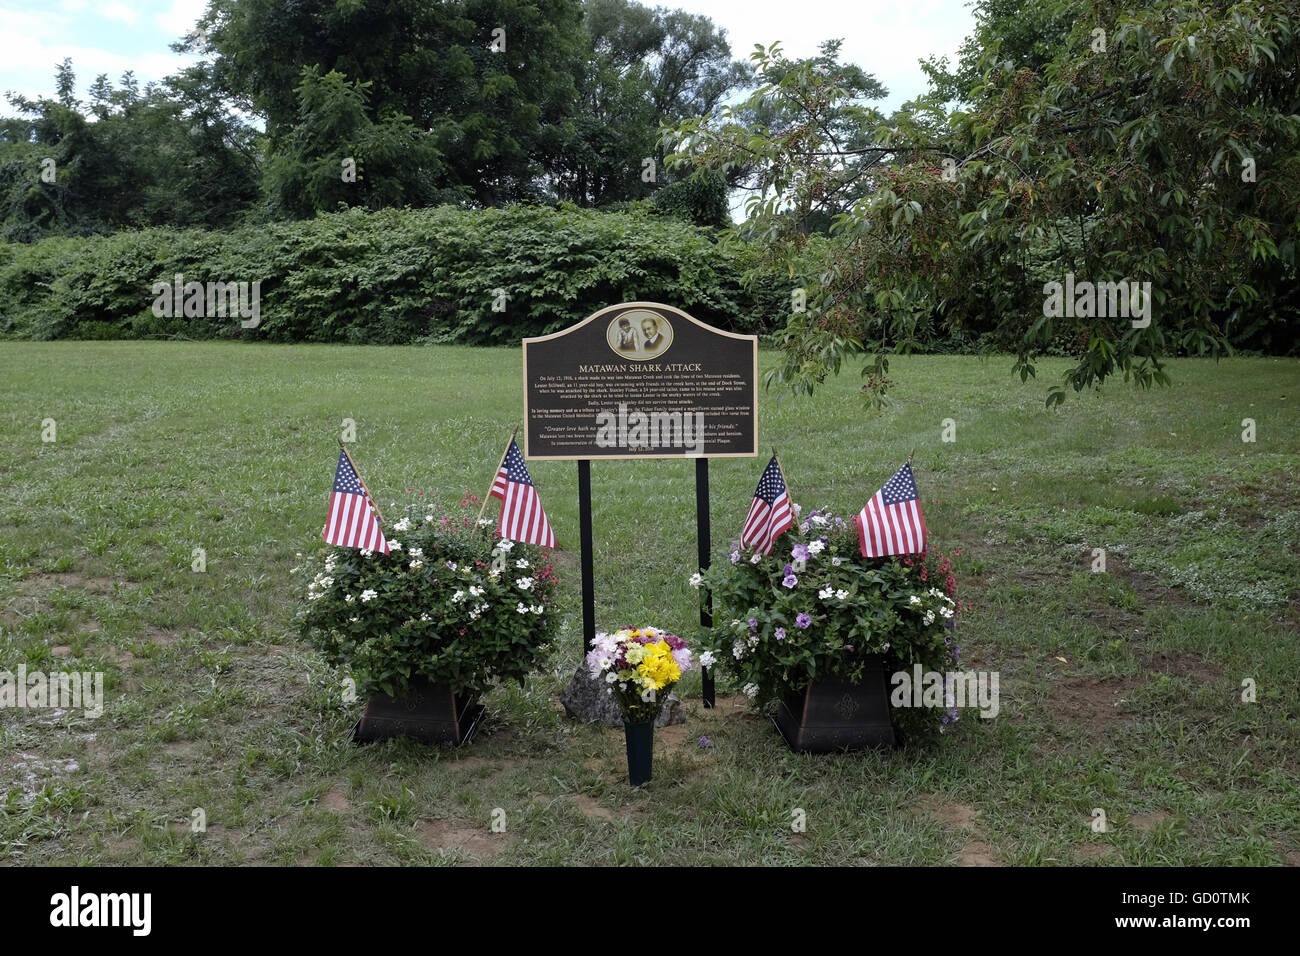 Plaque commemorating the two citizens killed in the New Jersey shore shark attacks in July 1916 in Matawan, NJ - Stock Image